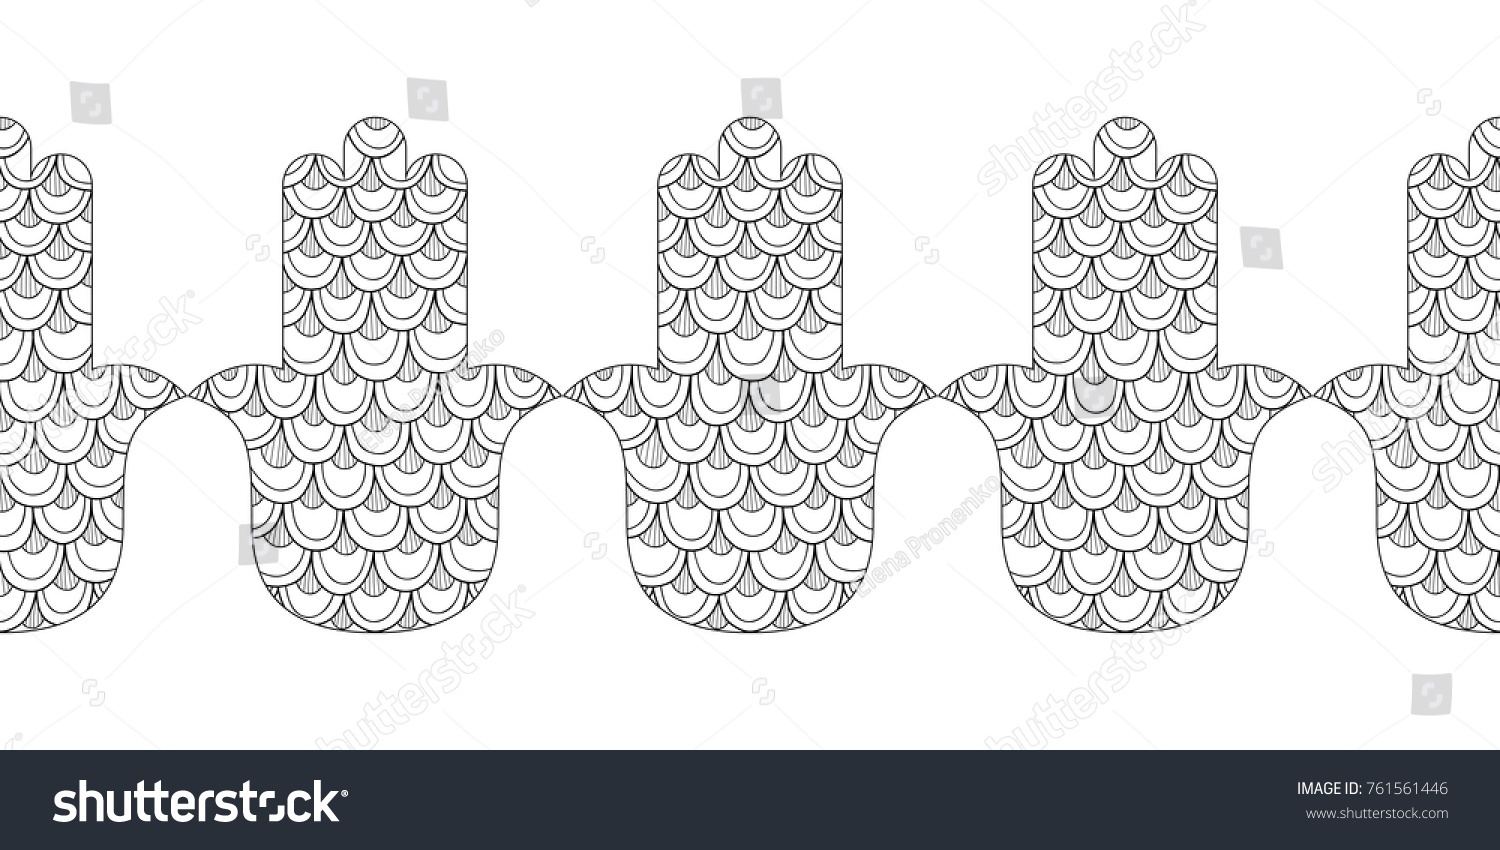 stock vector hamsa hand black and white illustration for coloring page decorative amulet for good luck and